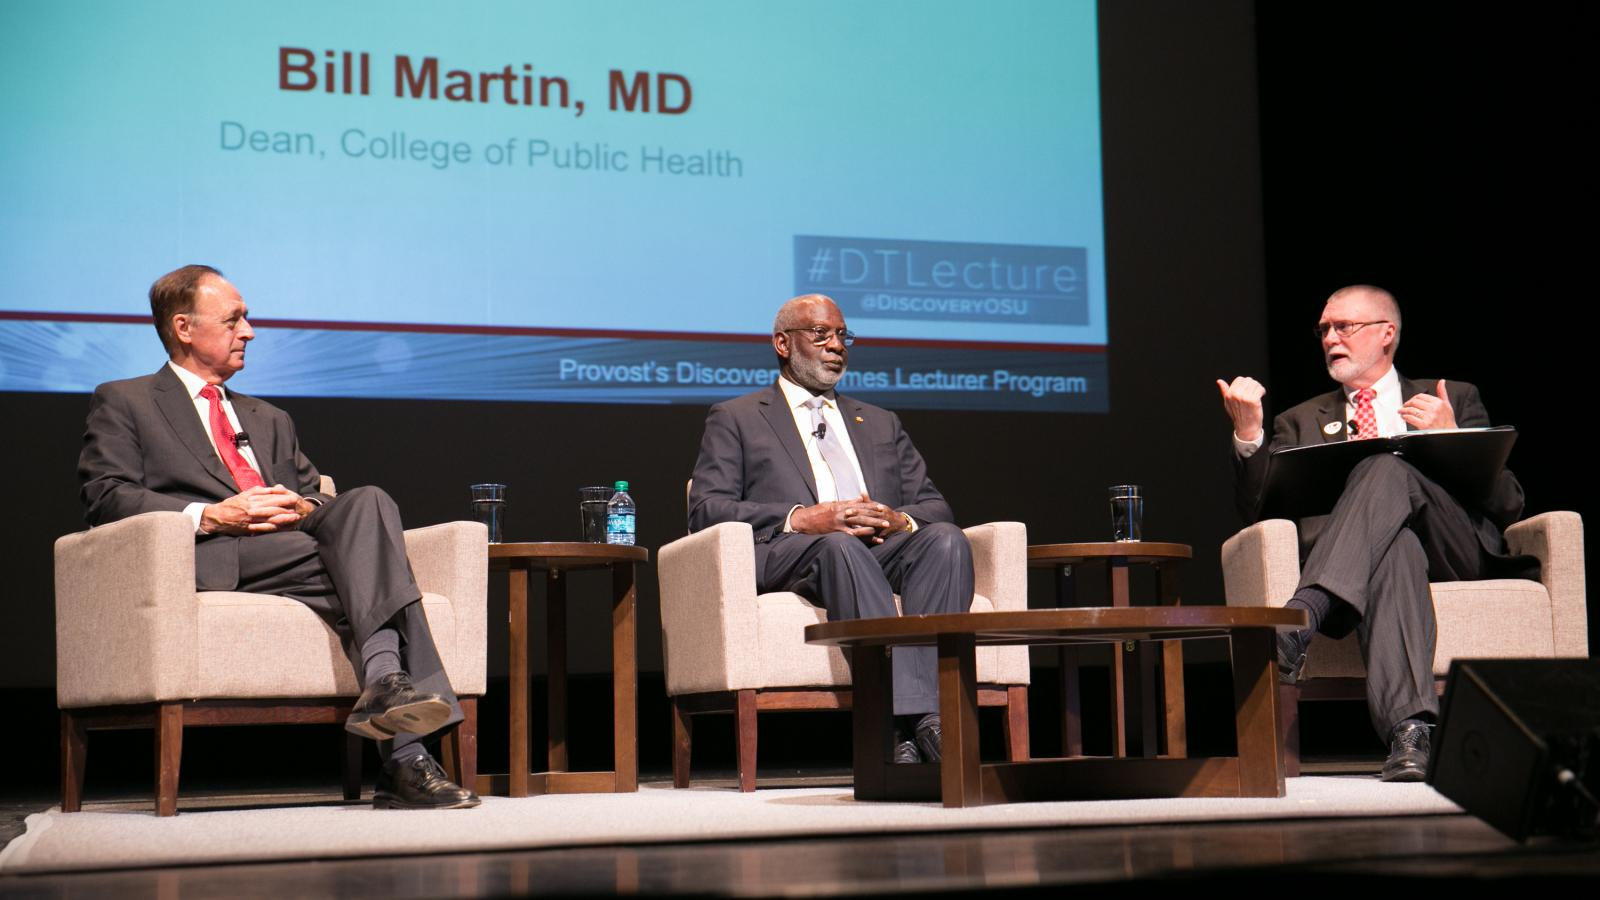 Bill Martin, David Satcher, and Bruce McPheron at the Discovery Themes Lecture